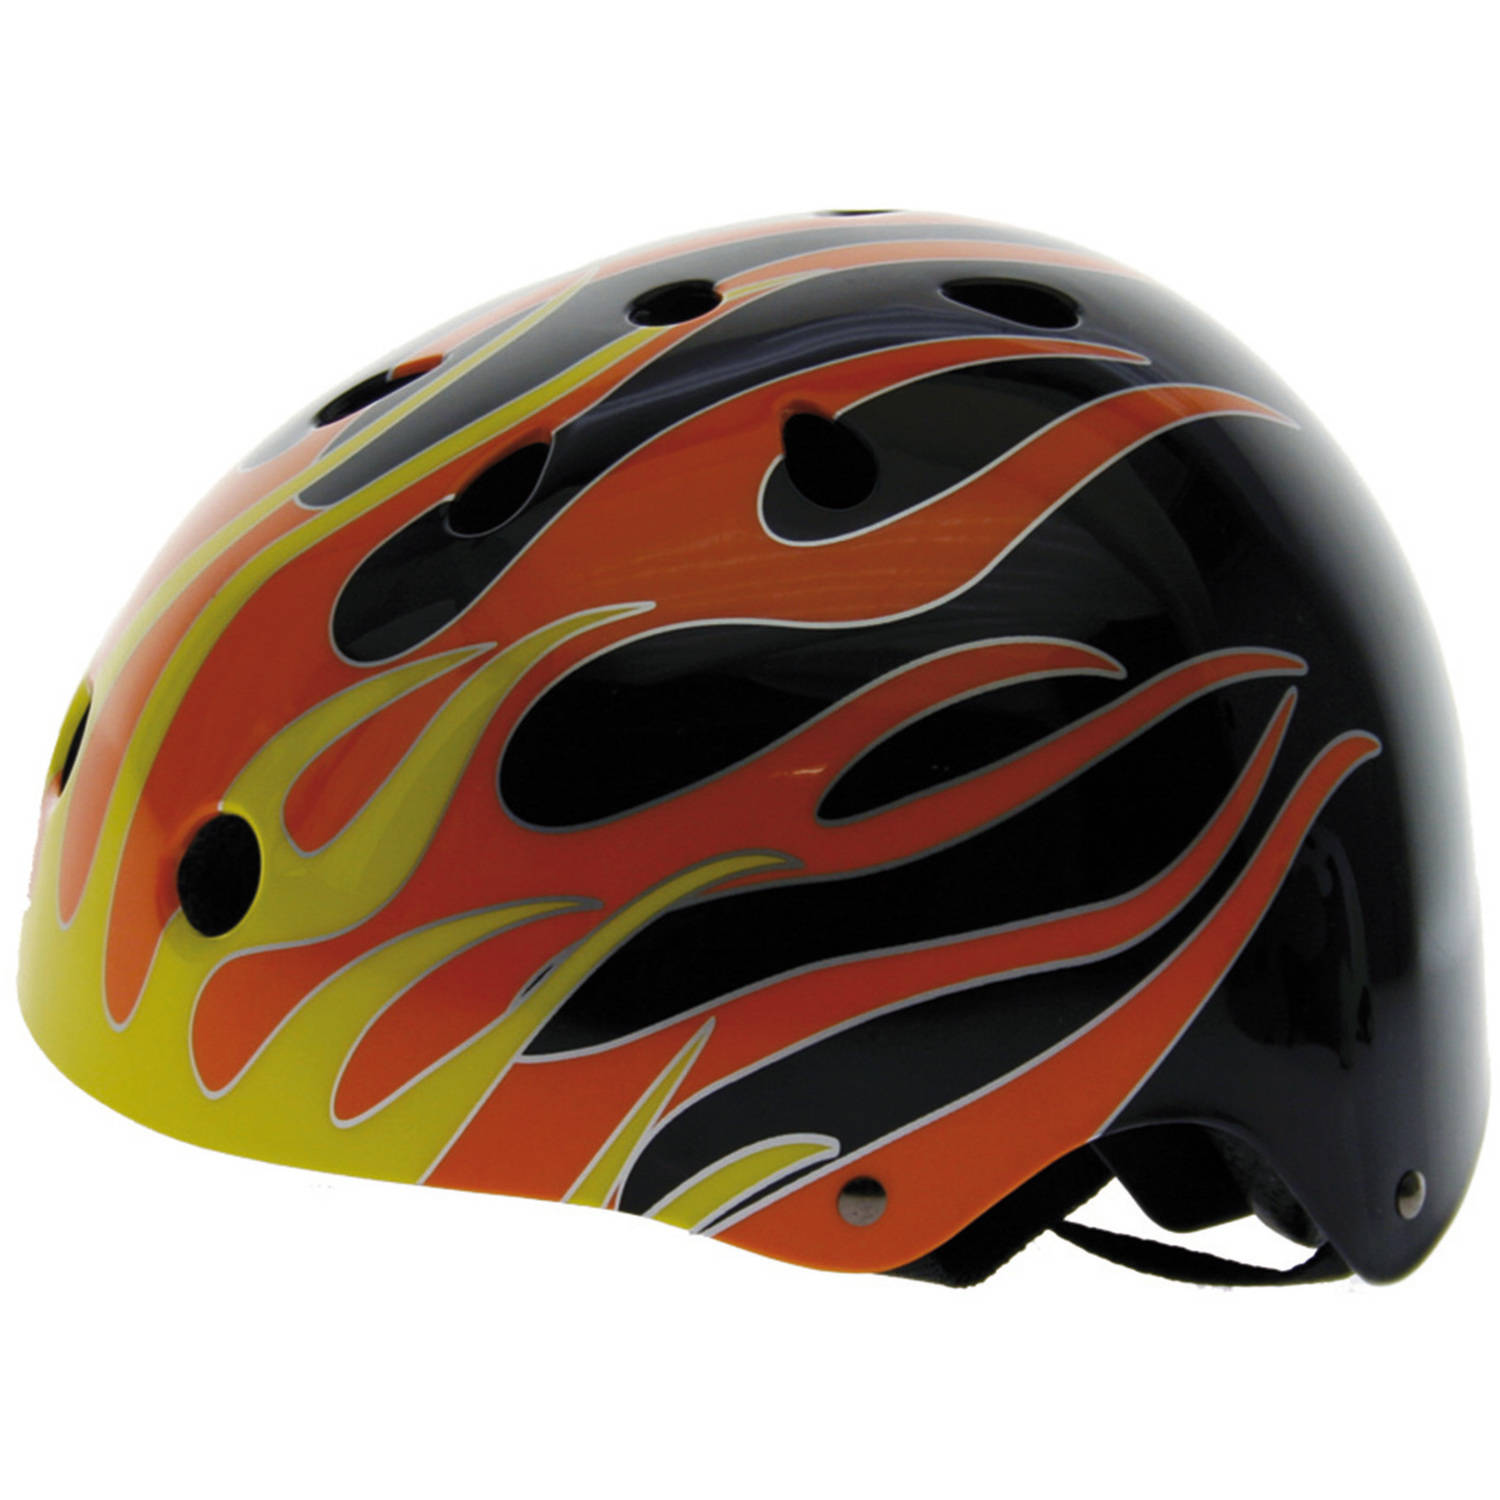 Ventura Freestyle Bike Helmet with Flame Design, Medium